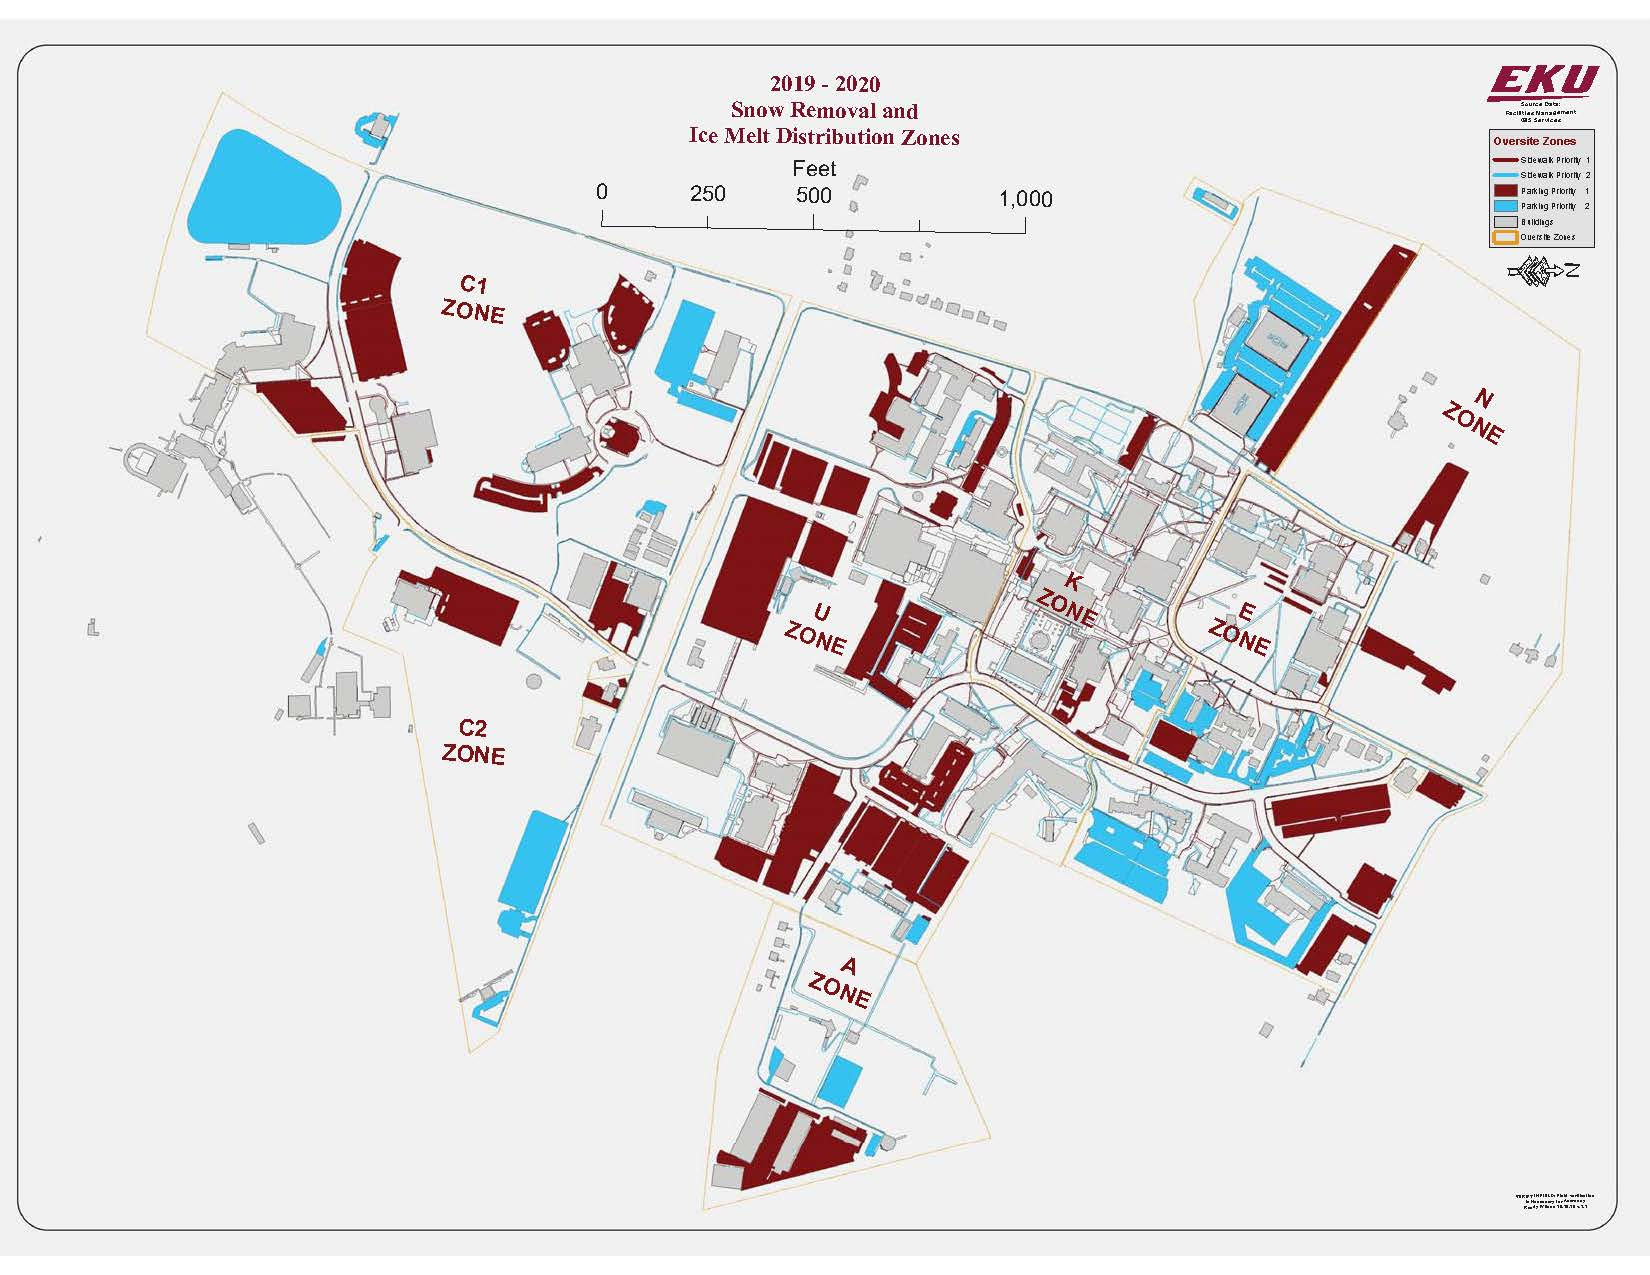 2019-2020 Snow Removal and Ice Melt Distribution Plan